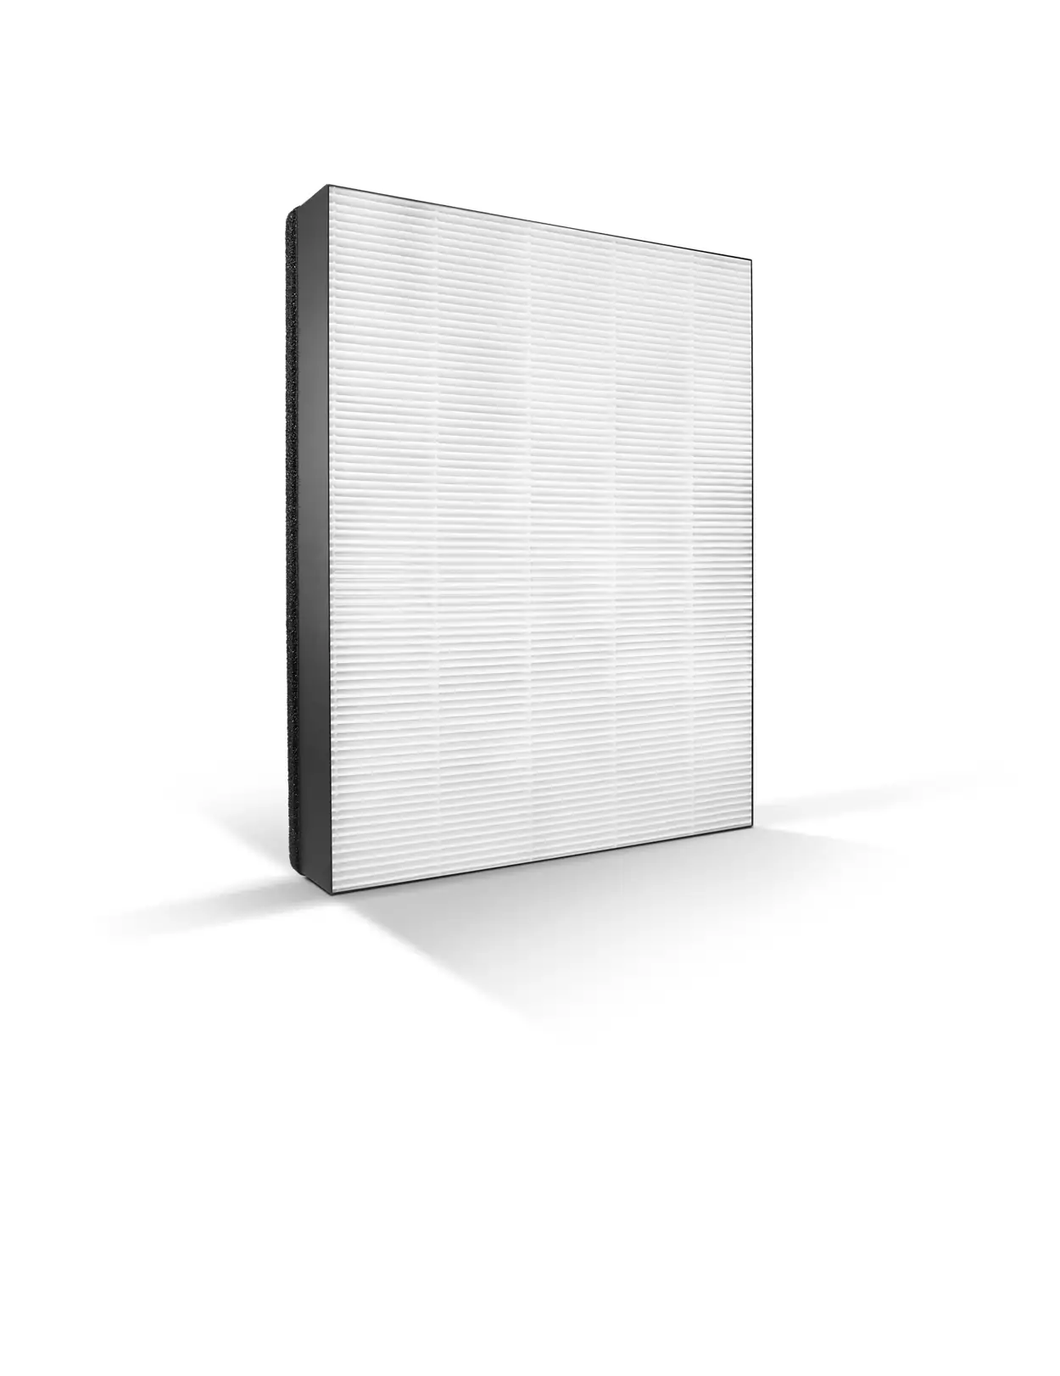 Philips NanoProtect HEPA filter for AC2882 AC2885 AC2887 AC2889 AC3821